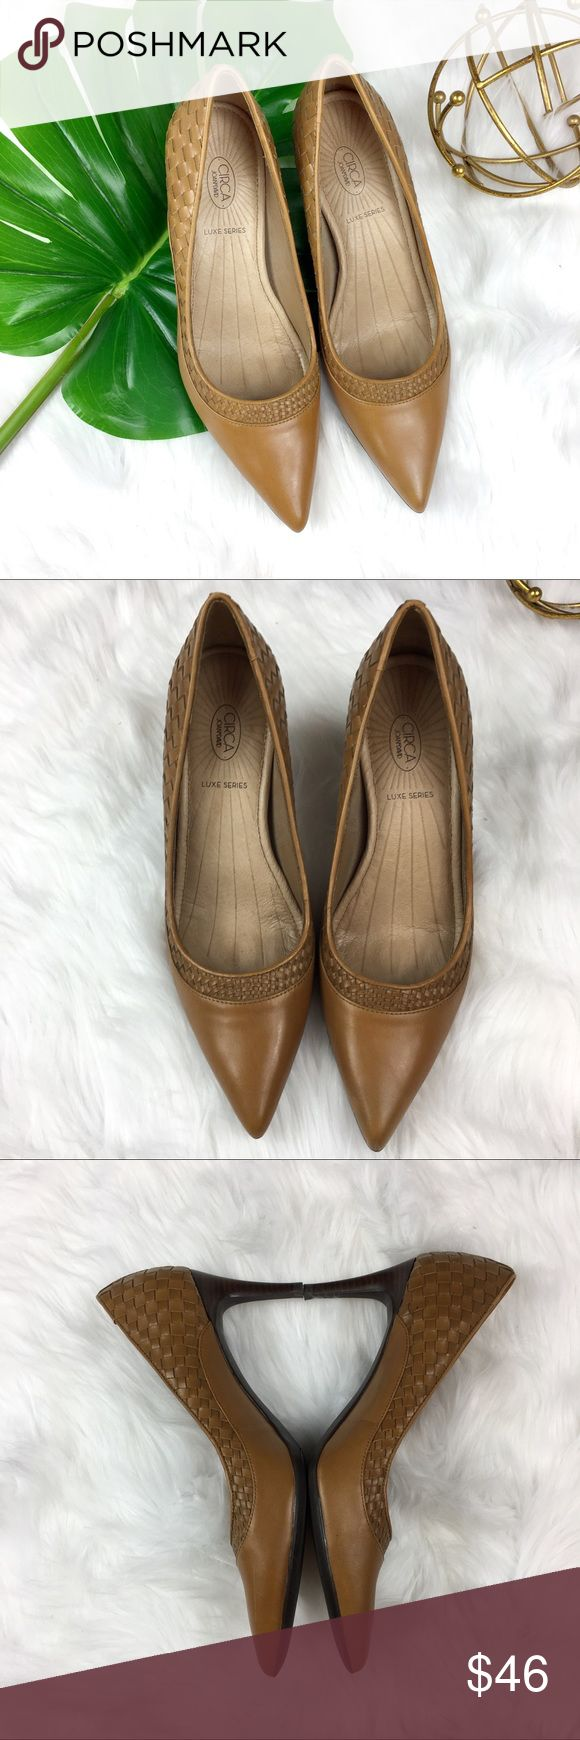 Circa Joan & David Leather Weave Heels Circa Joan & David Lux Series leather weave point toe heels. Size 7 1/2. Pre-owned condition with no major flaws. No box included.  ❌I do not Trade 🙅🏻 Or model💲 Posh Transactions ONLY Circa Joan & David Shoes Heels